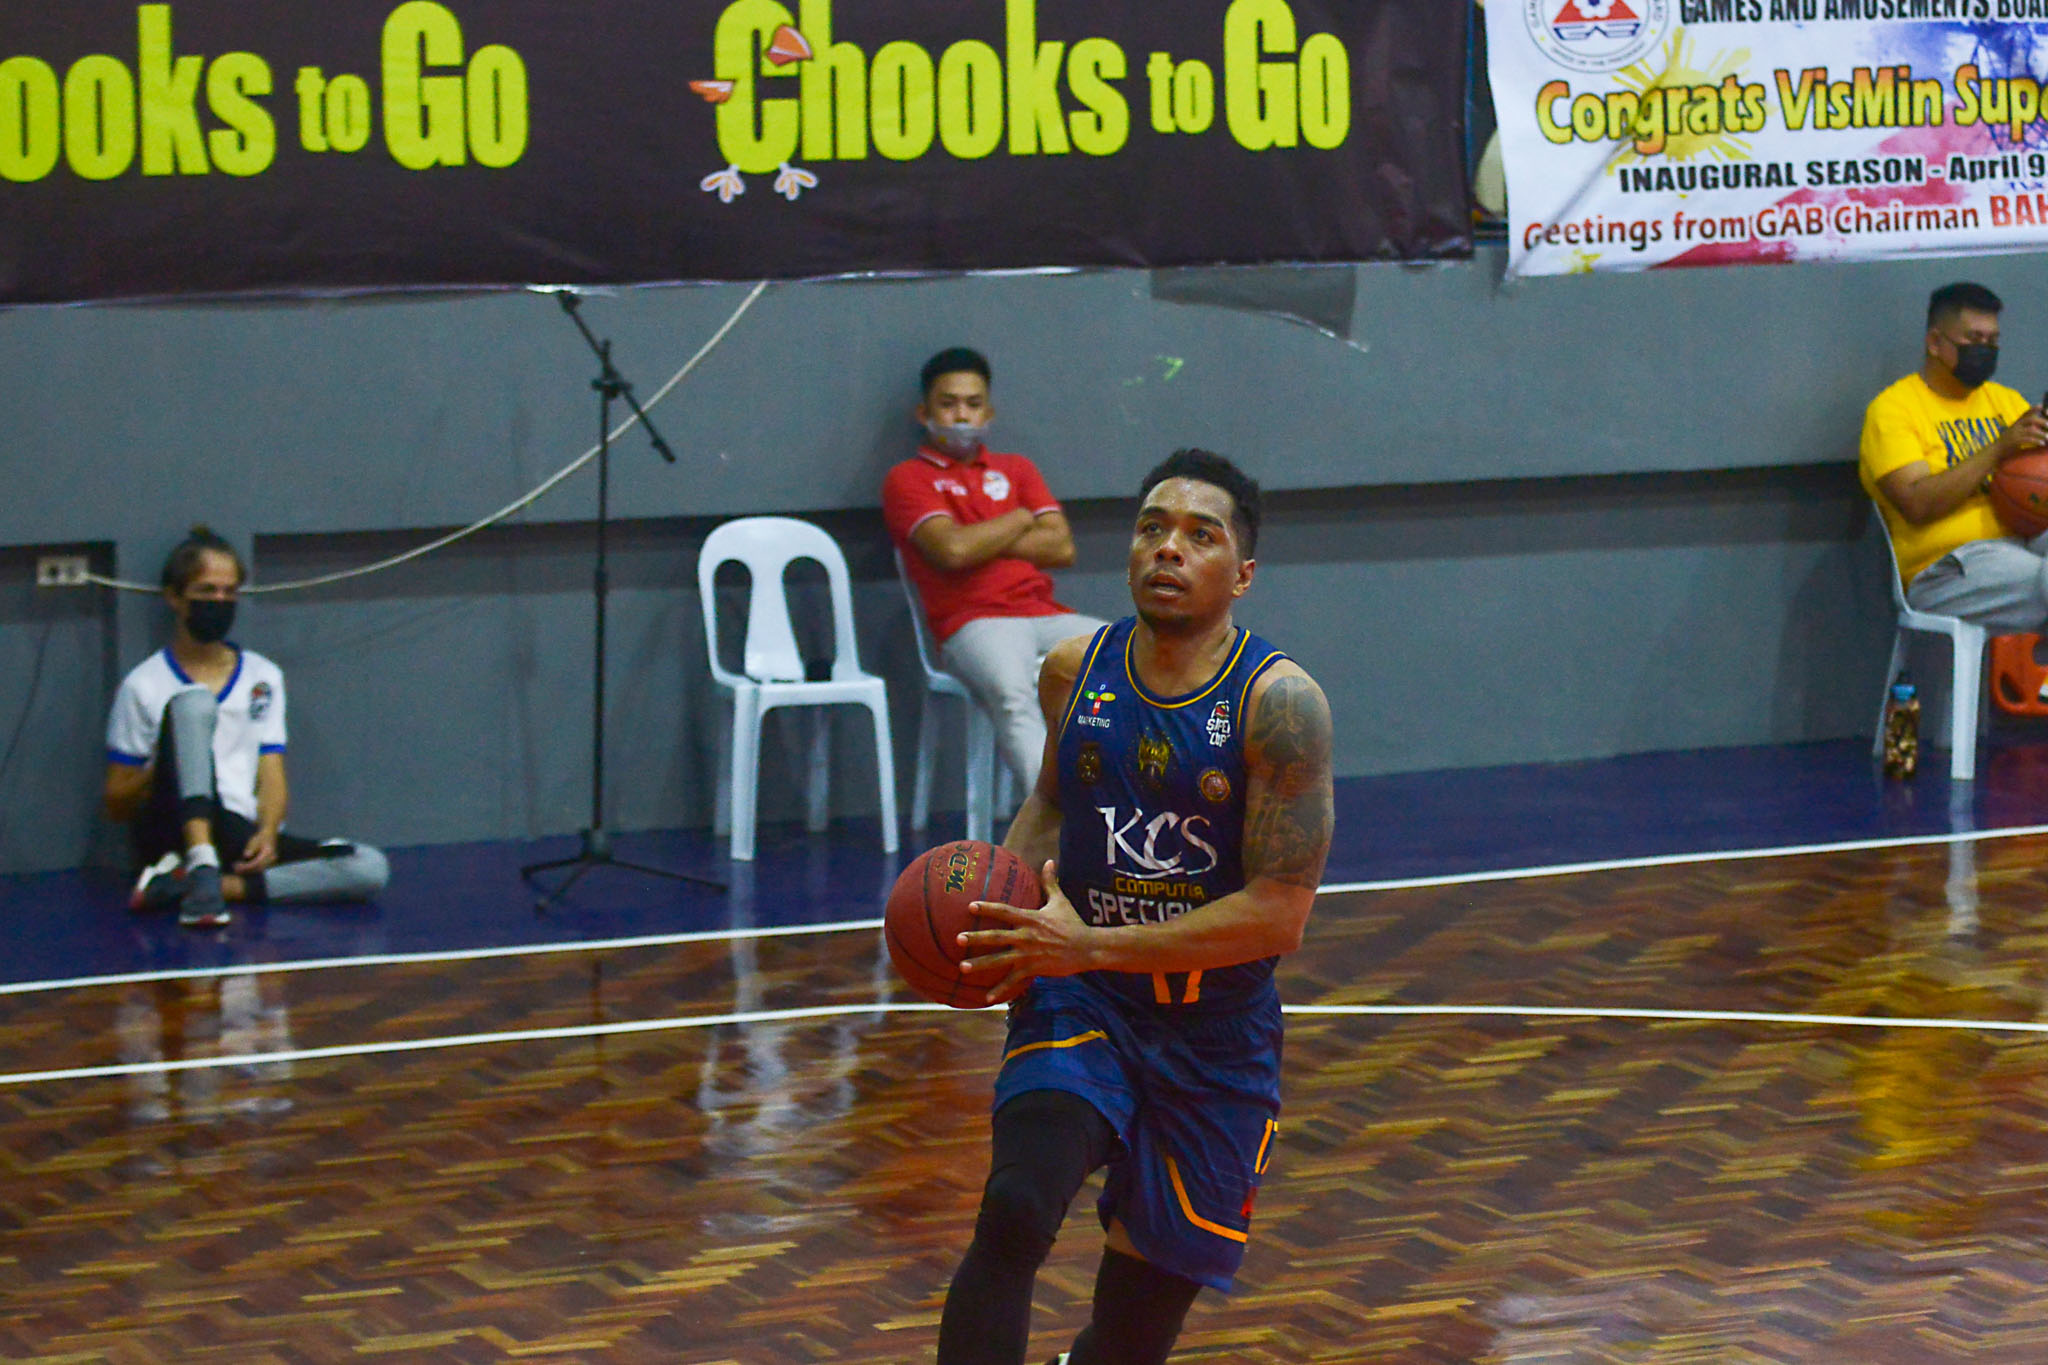 2021-Chooks-to-Go-VisMin-Cup-Dumaguete-vs-Mandaue-Ping-Exciminiano-2 Ping Exciminiano proves that he can still compete in VisMin Basketball News VisMin Super Cup  - philippine sports news